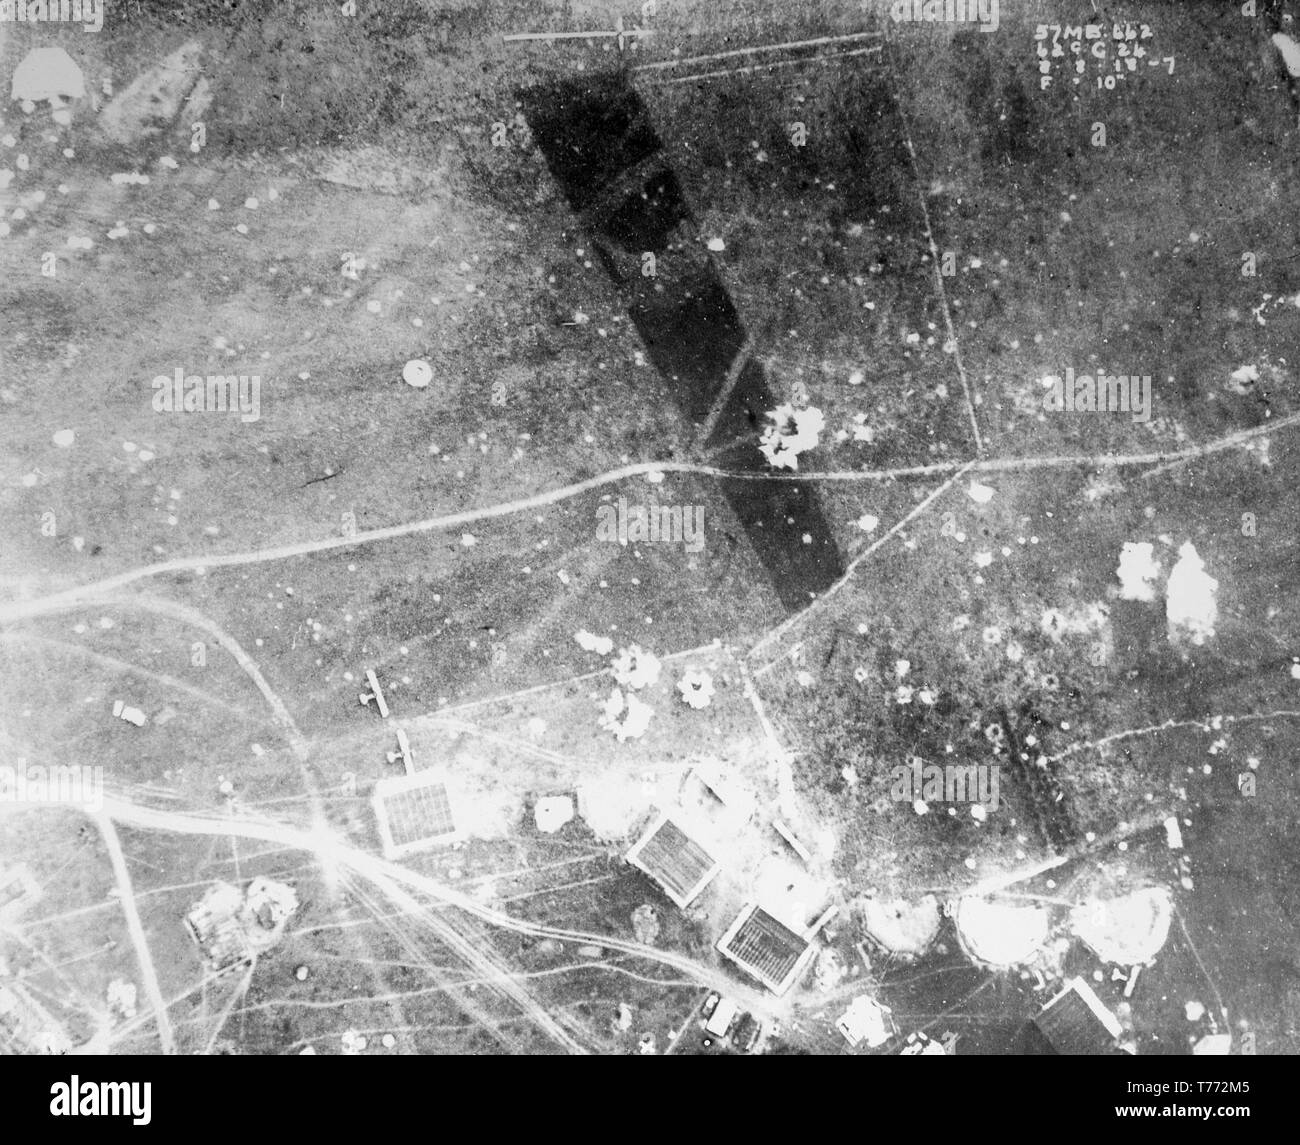 A contemporary British black and white aerial photograph taken on 8th August 1918, during  World War One, showing the destruction caused by the massive shelling and bombing of huge areas of Northern France. Two aeroplanes can be seen on the ground, as the aerodrome they are stationed in, has obviously been targeted for attack. - Stock Image